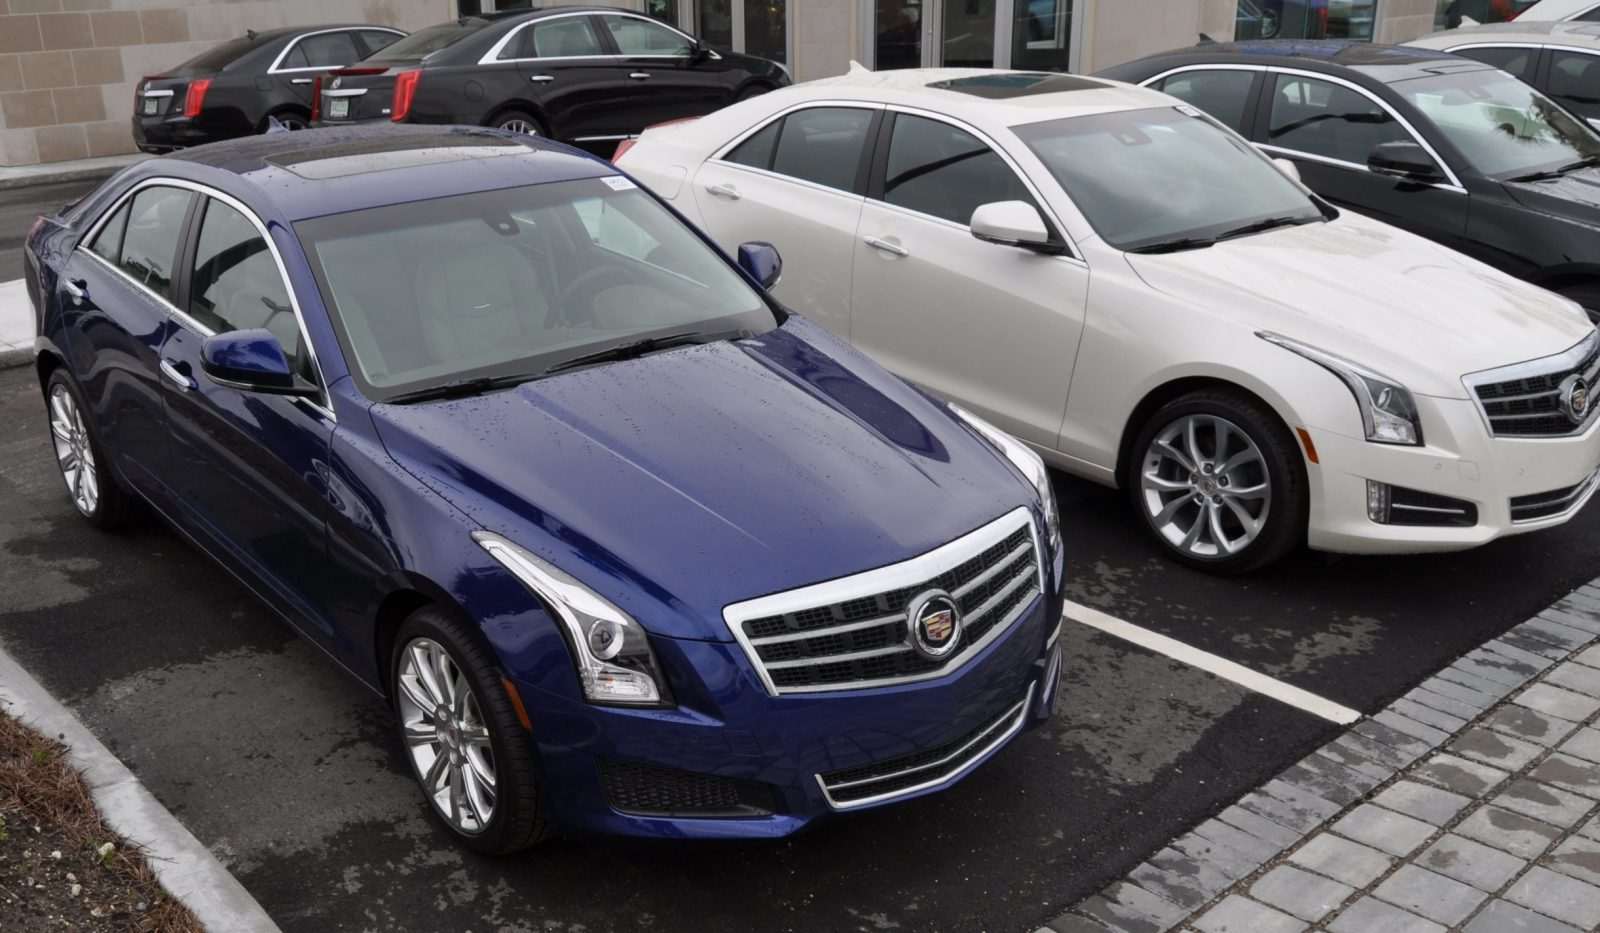 2014 Cadillac ATS4 - High-Res Photos 12